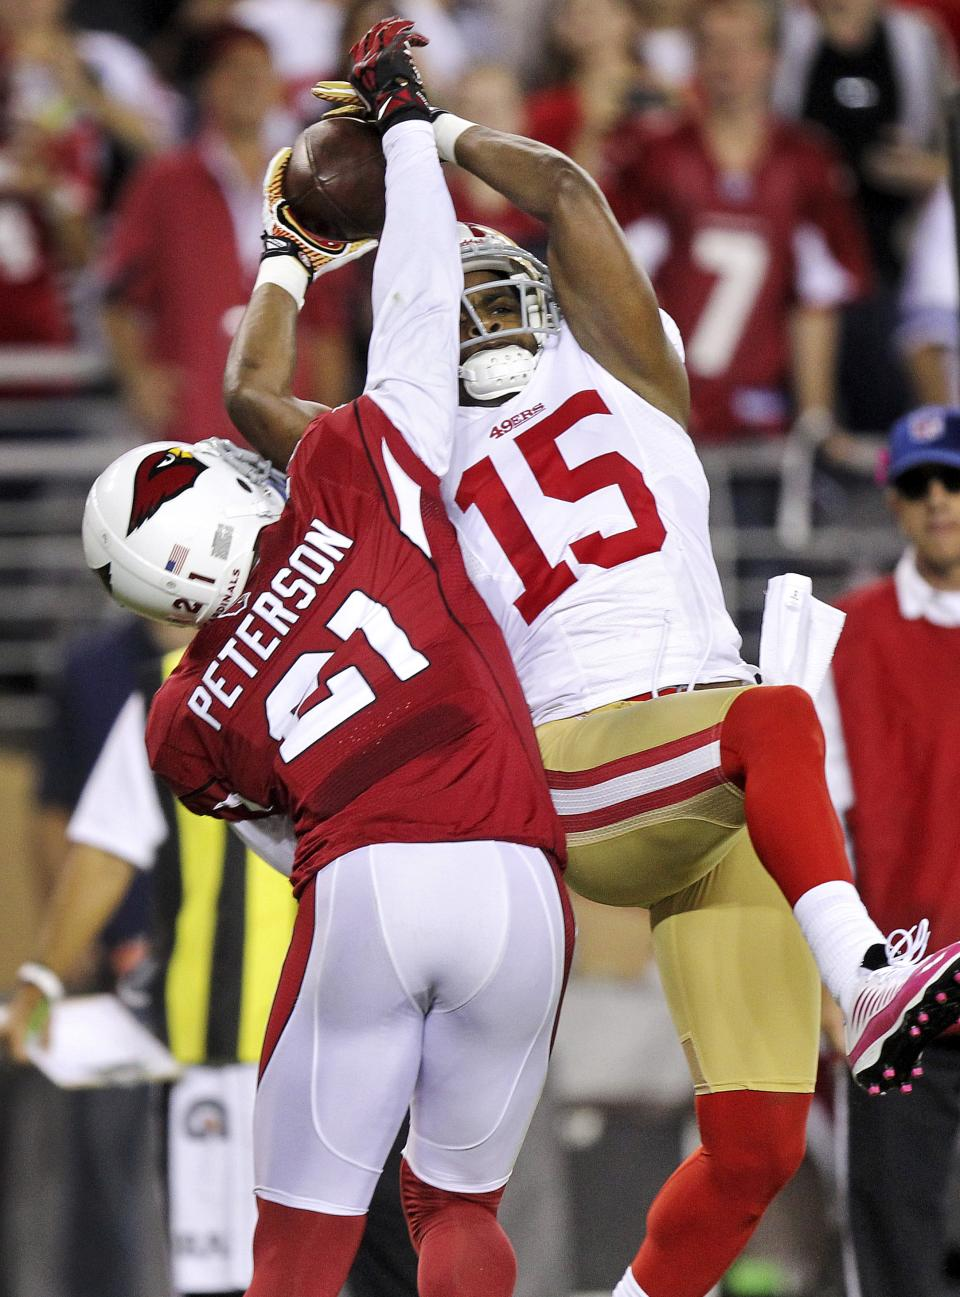 San Francisco 49ers wide receiver Michael Crabtree (15) pulls in a touchdown pass as Arizona Cardinals cornerback Patrick Peterson (21) defends during the first half of an NFL football game, Monday, Oct. 29, 2012, in Glendale, Ariz. (AP Photo/Paul Connors)